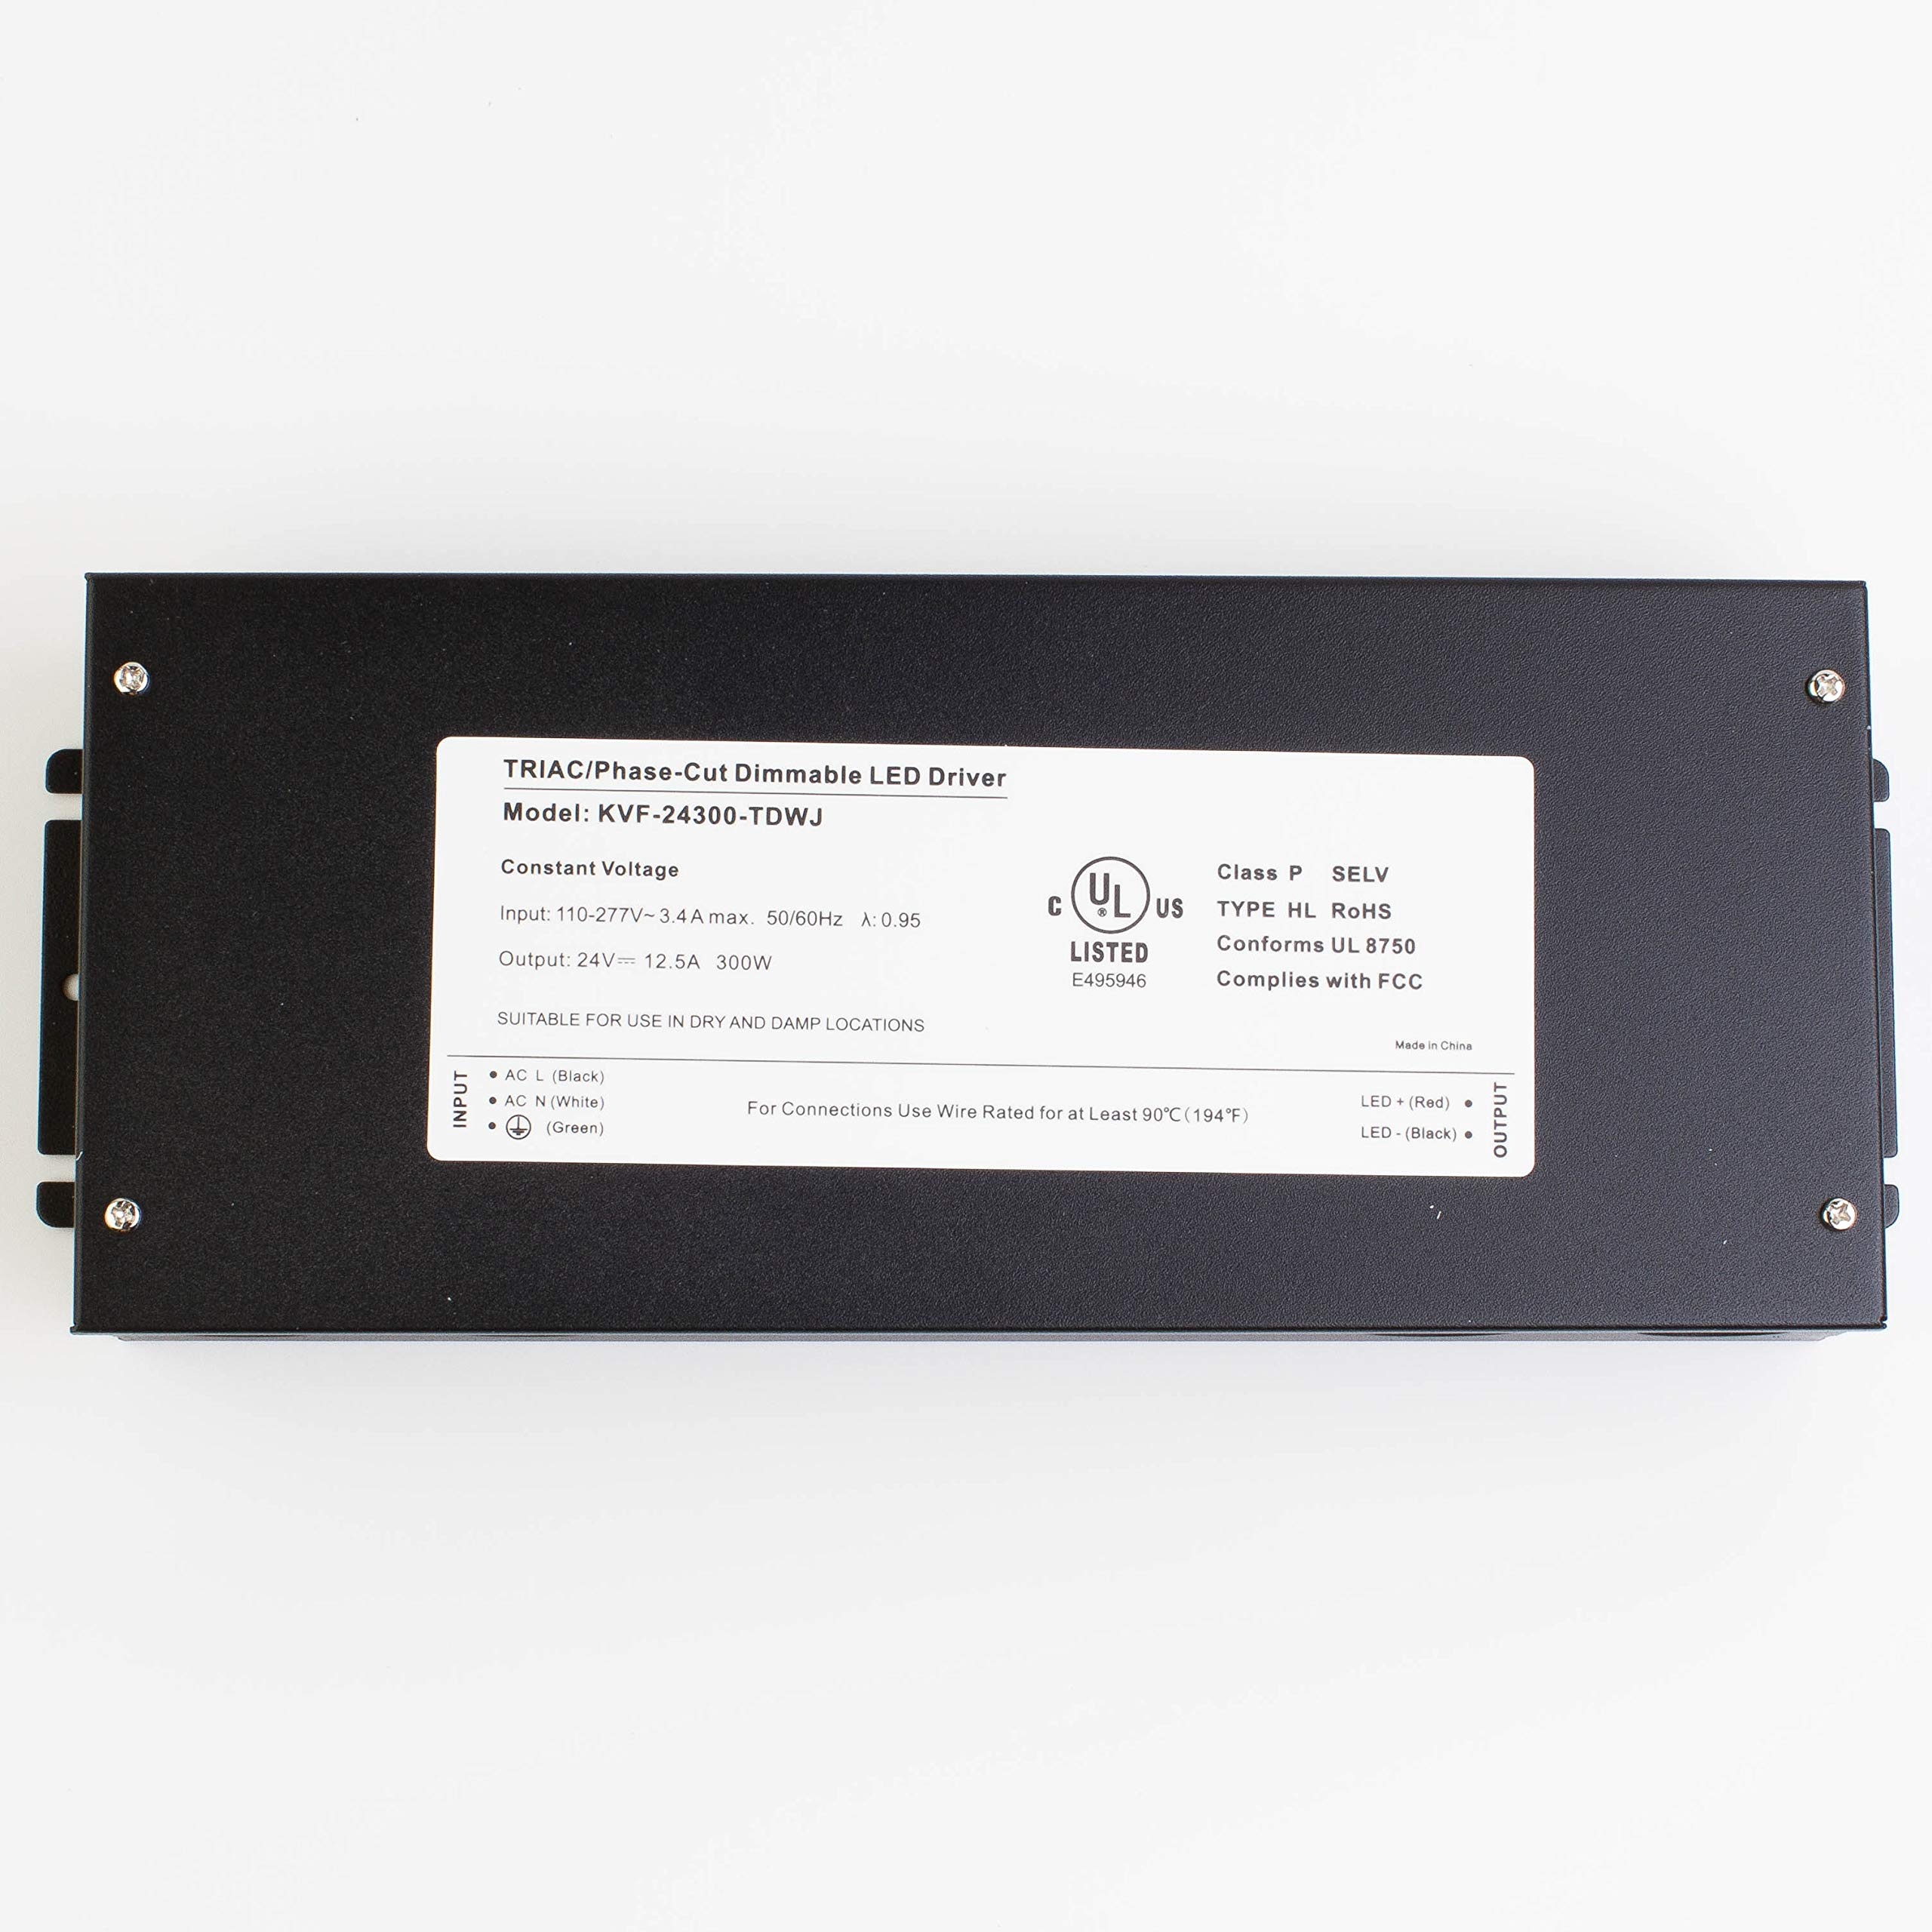 LEDupdates 24v UL Listed 300w Triac Dimmable Driver 110v - 277V AC to DC Transformer Constant Voltage Power Supply for LED Strip light Control by AC Wall Dimmer (24v 300w) by LEDUPDATES (Image #8)